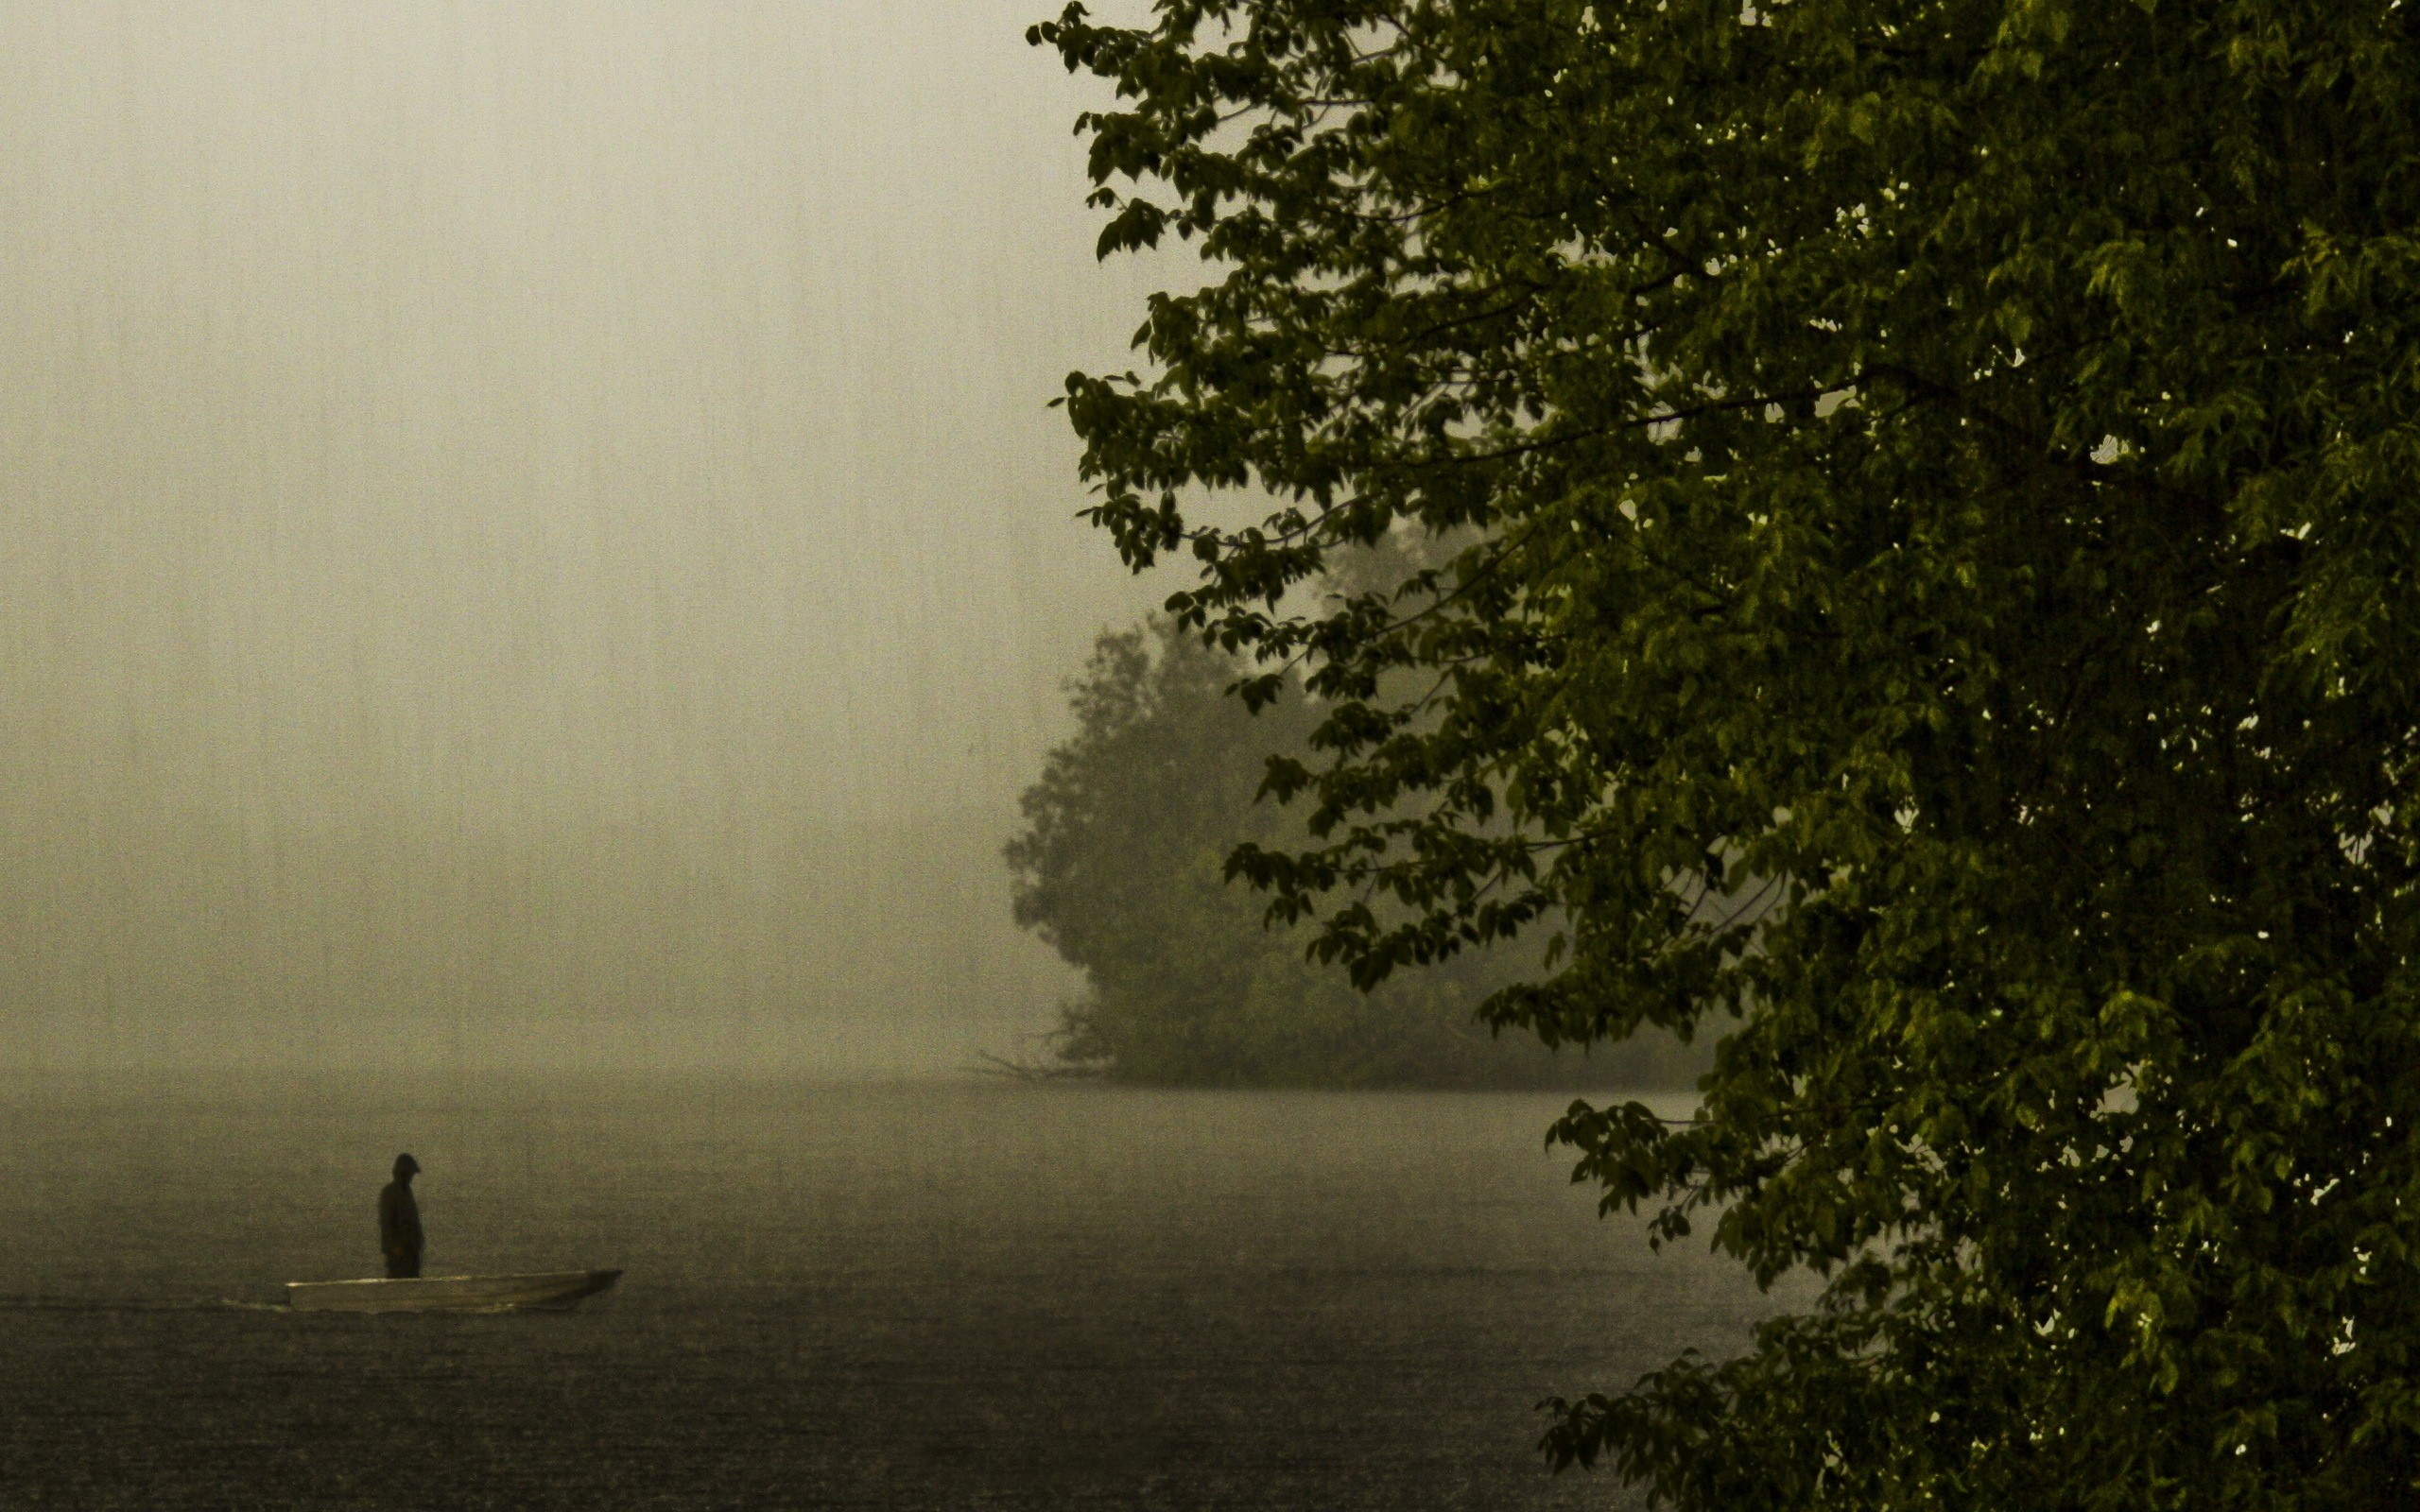 Black Iphone 7 Wallpaper Rainy Day On The Lake Wallpapers Rainy Day On The Lake